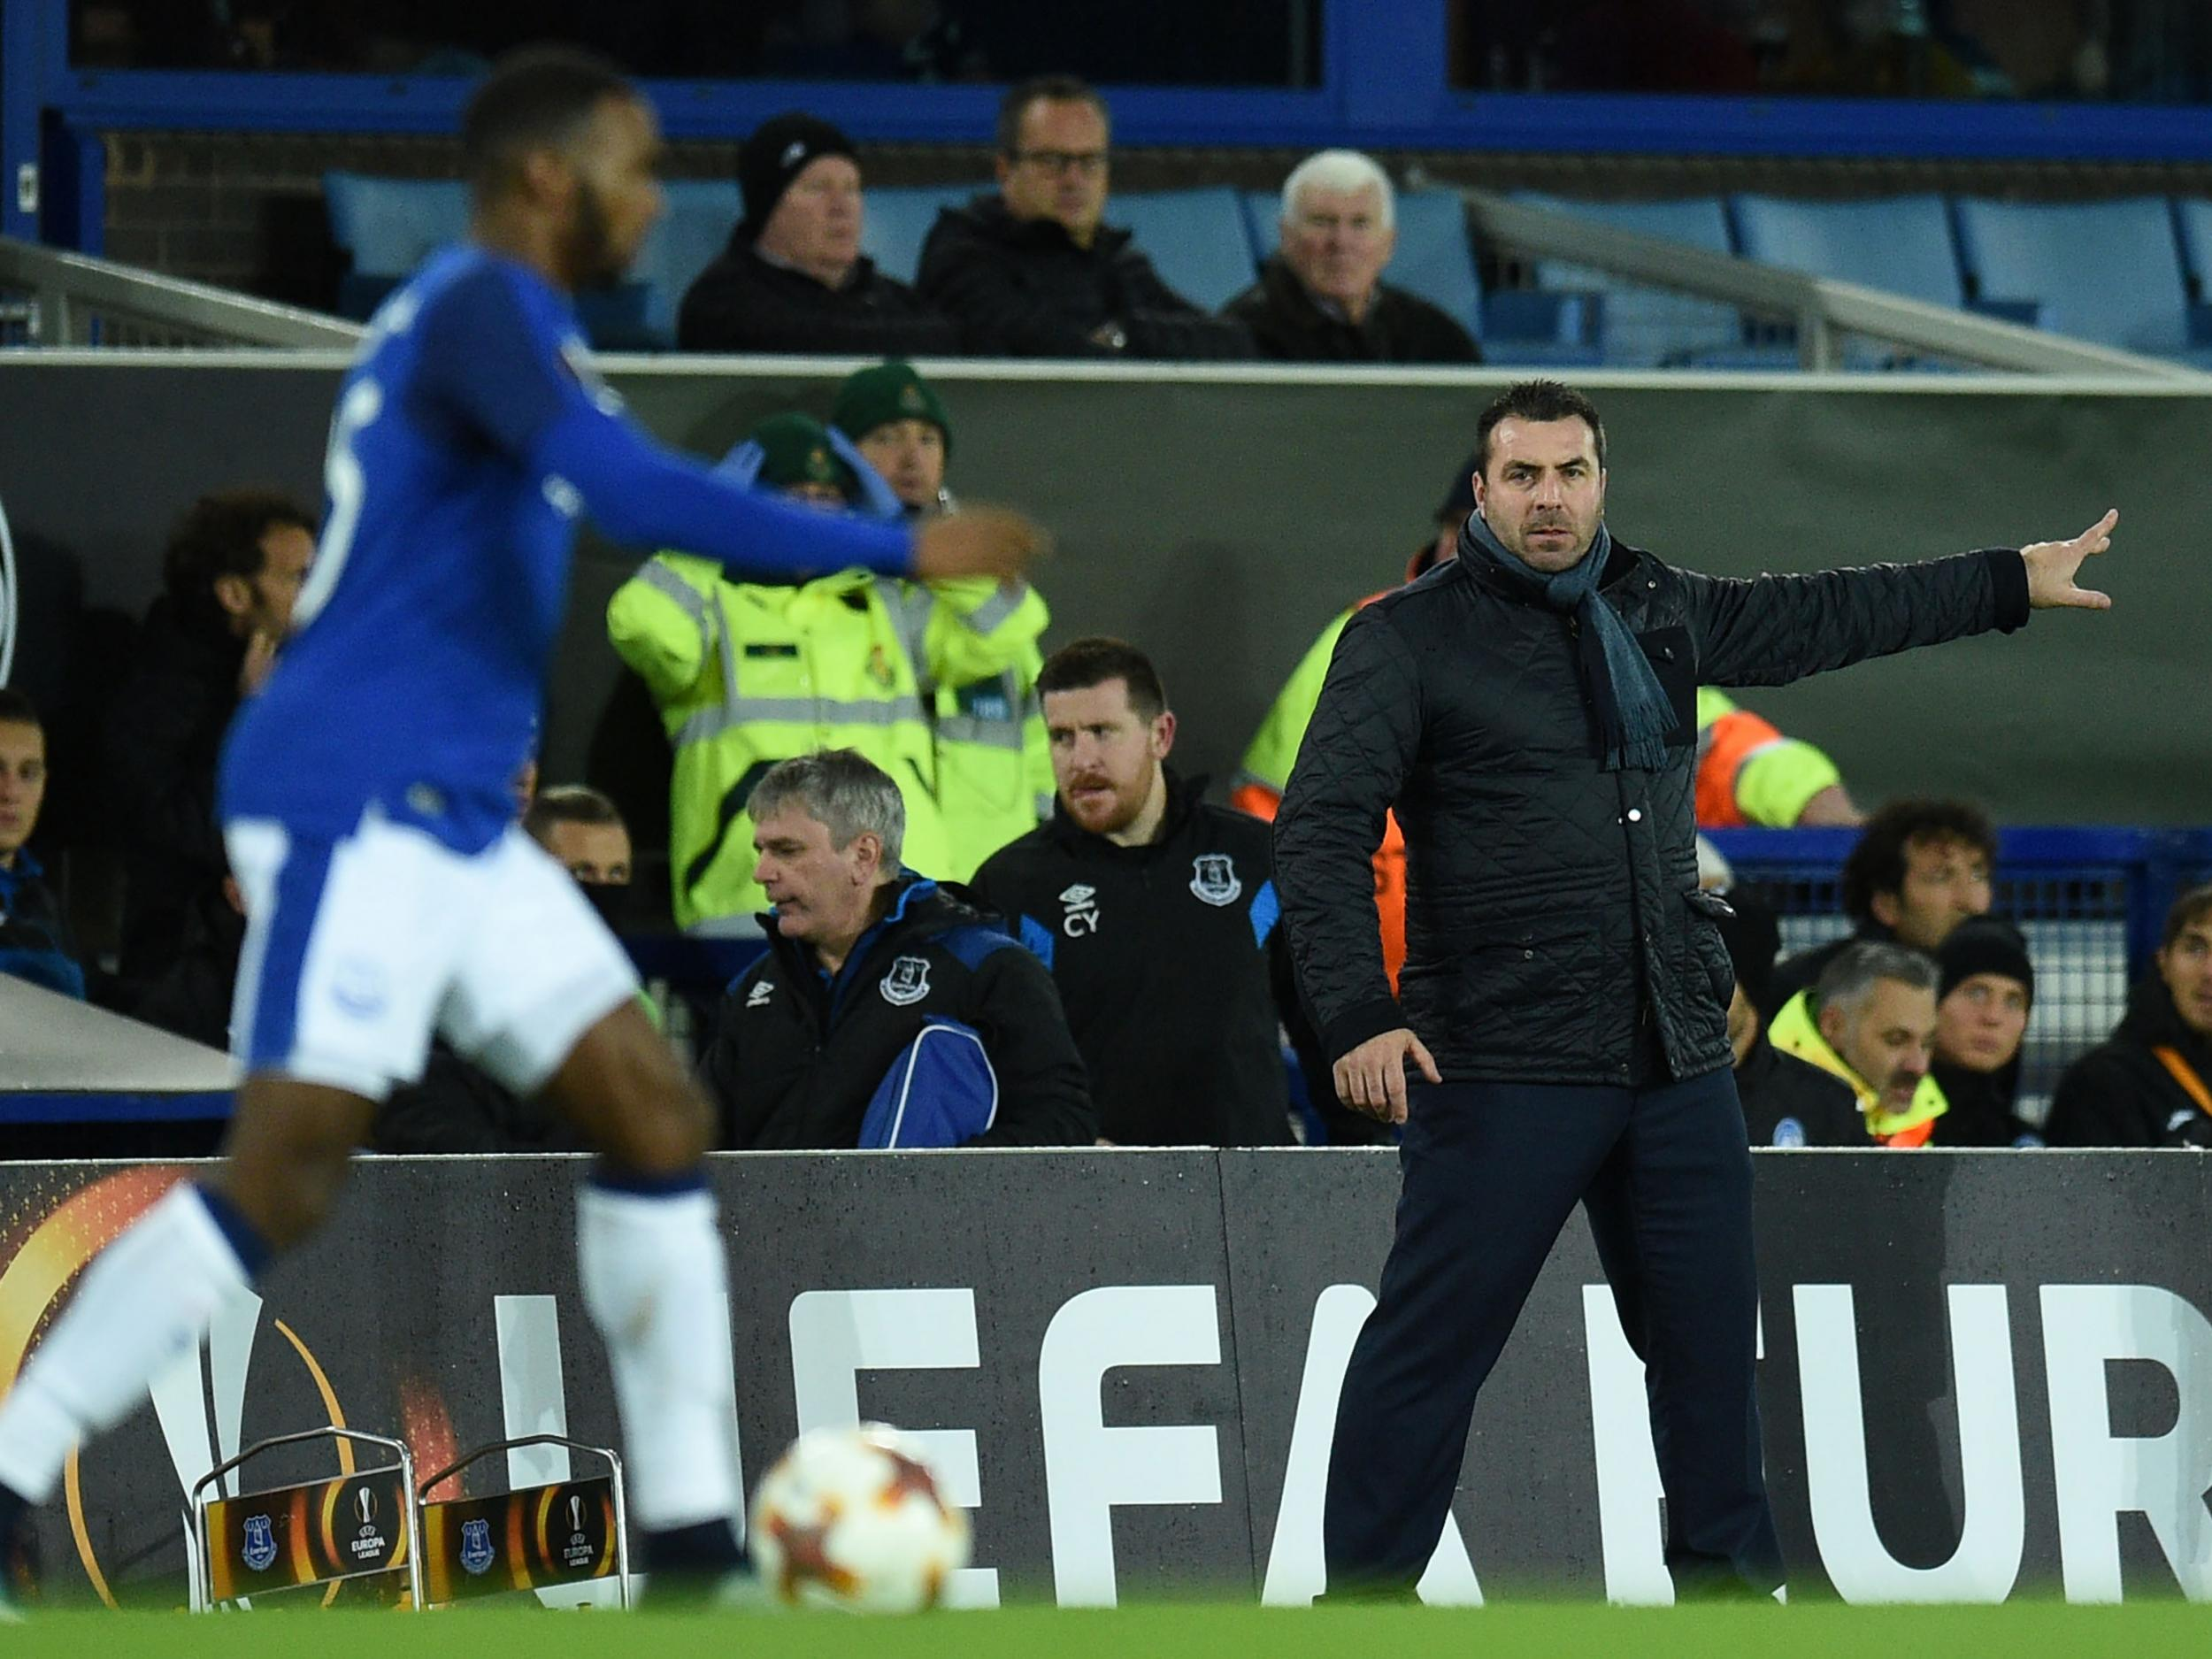 David Unsworth turns on Everton players after humbling 5-1 Europa League defeat to Atalanta